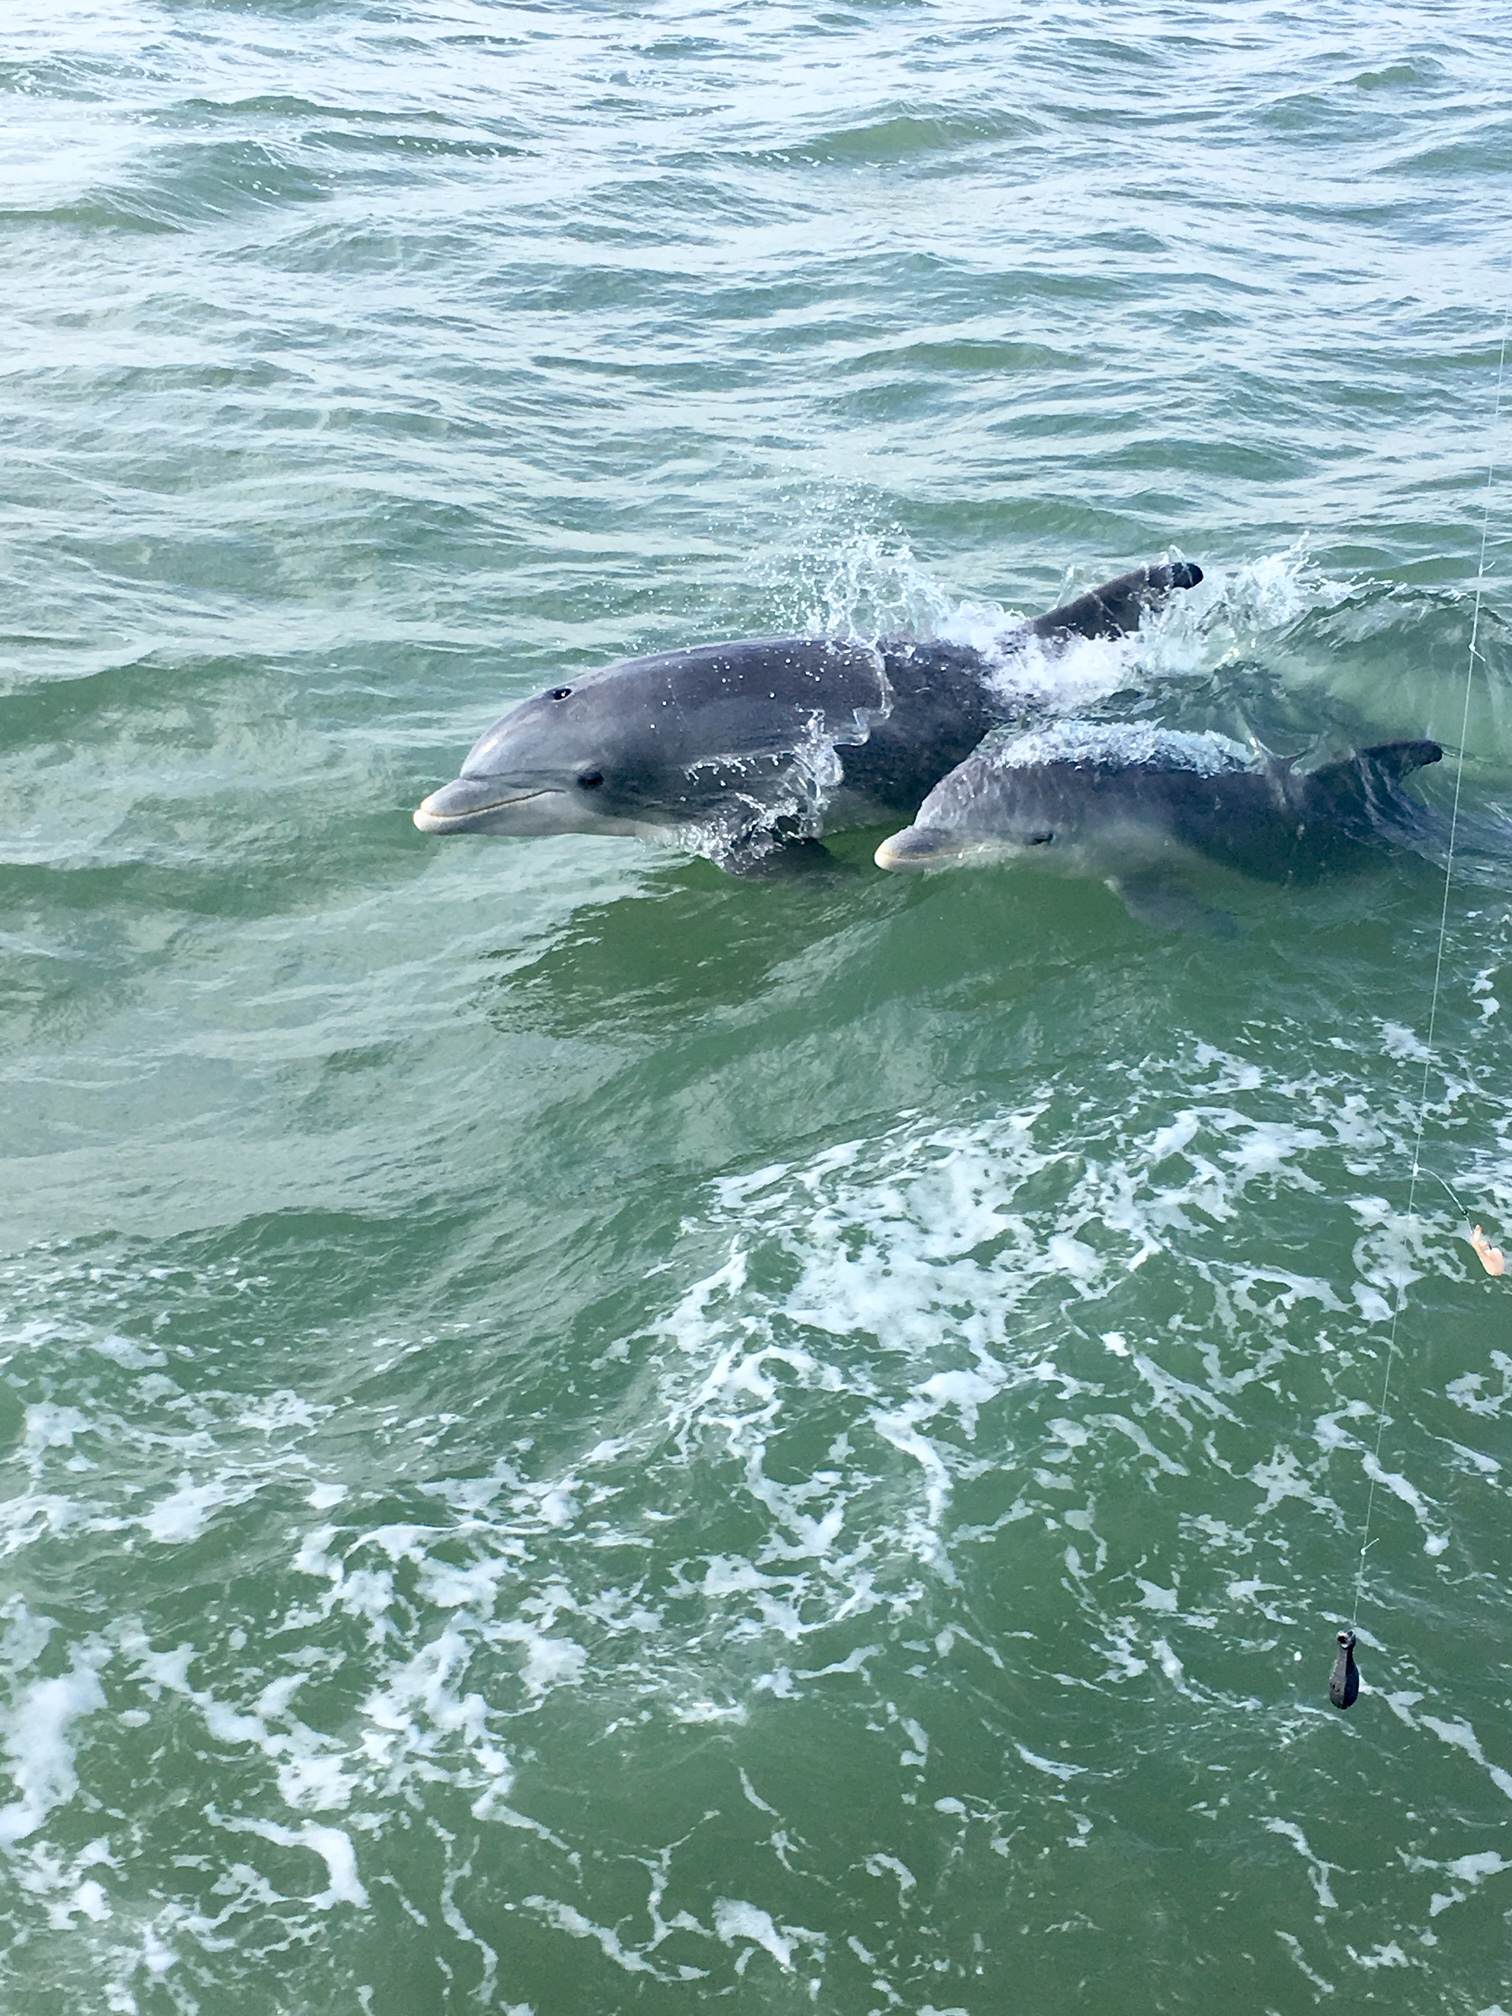 Soth Padre Island Dolphin watch